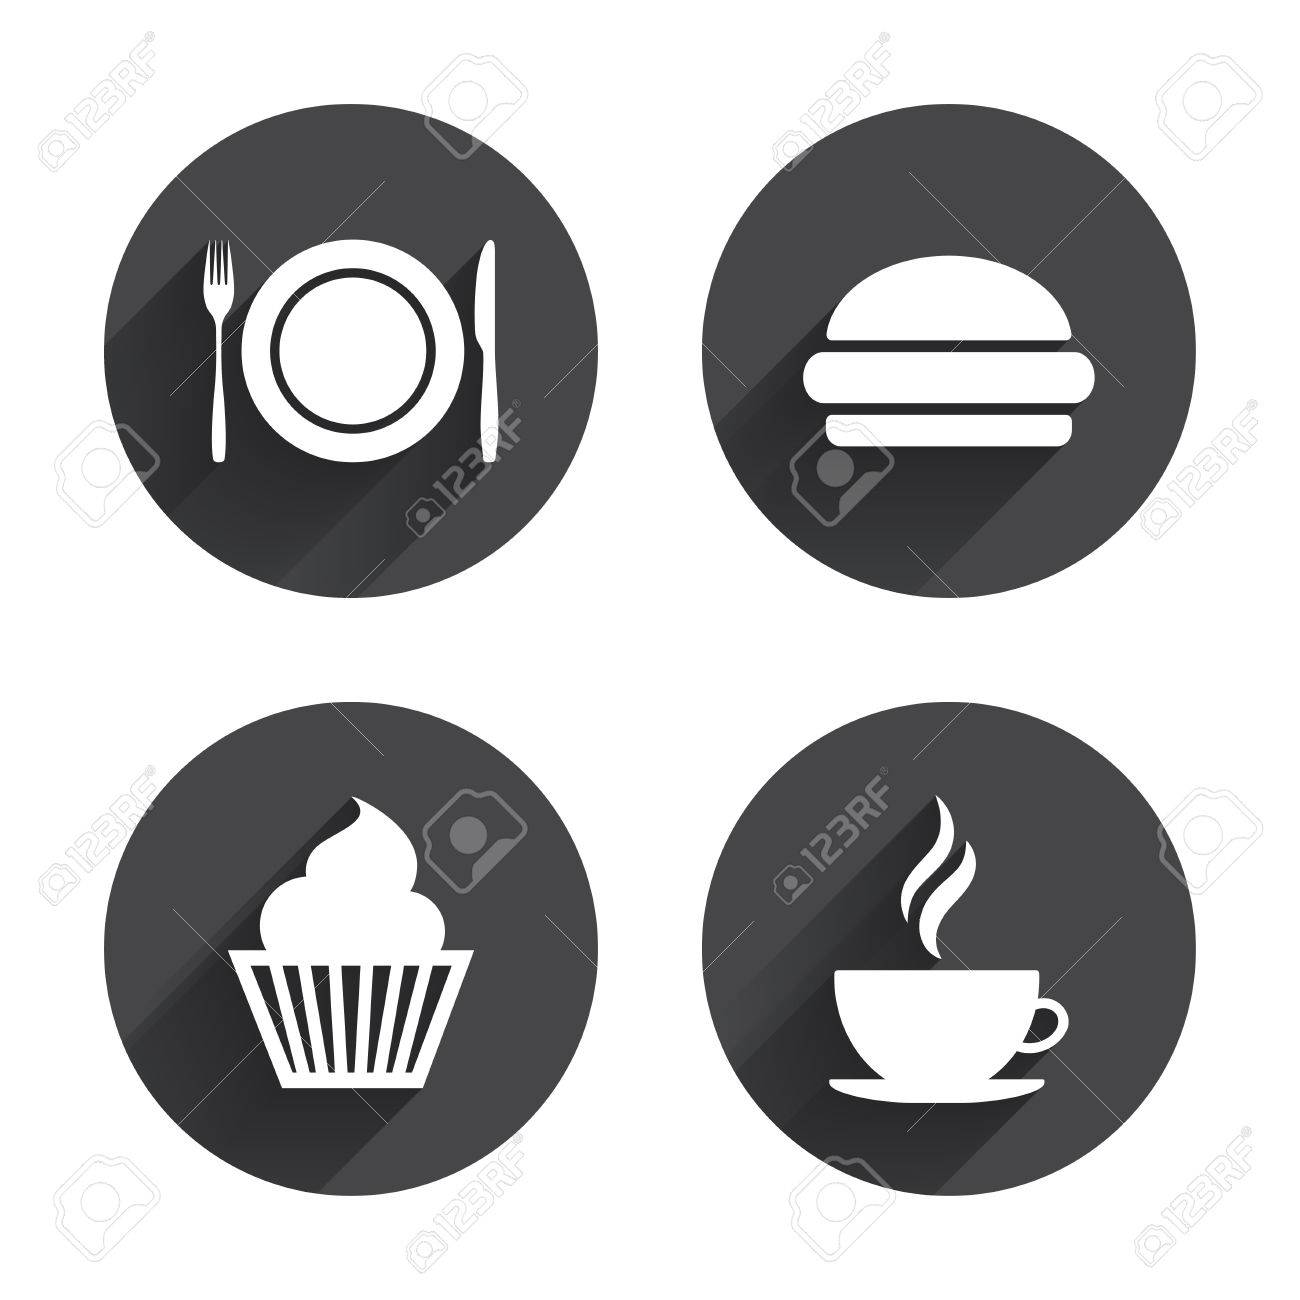 Food And Drink Icons Muffin Cupcake Symbol Plate Dish With Fork And Knife Sign Hot Coffee Cup And Hamburger Circles Buttons With Long Flat Shadow